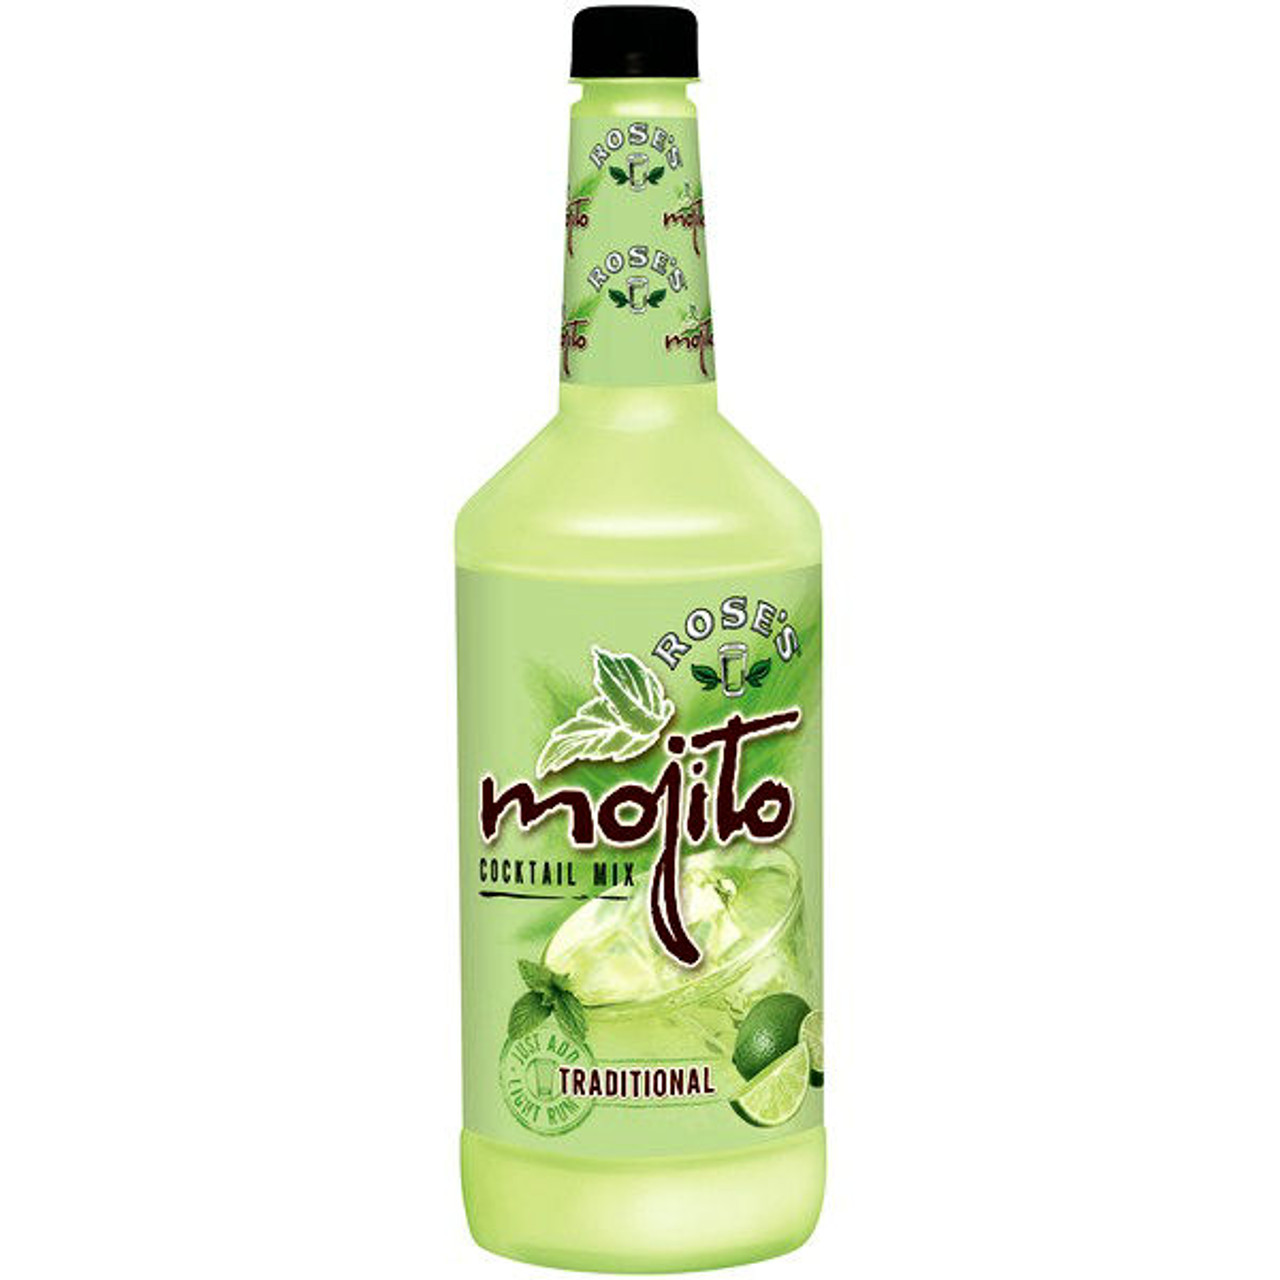 Rose's Traditional Mojito Cocktail Mix 1L